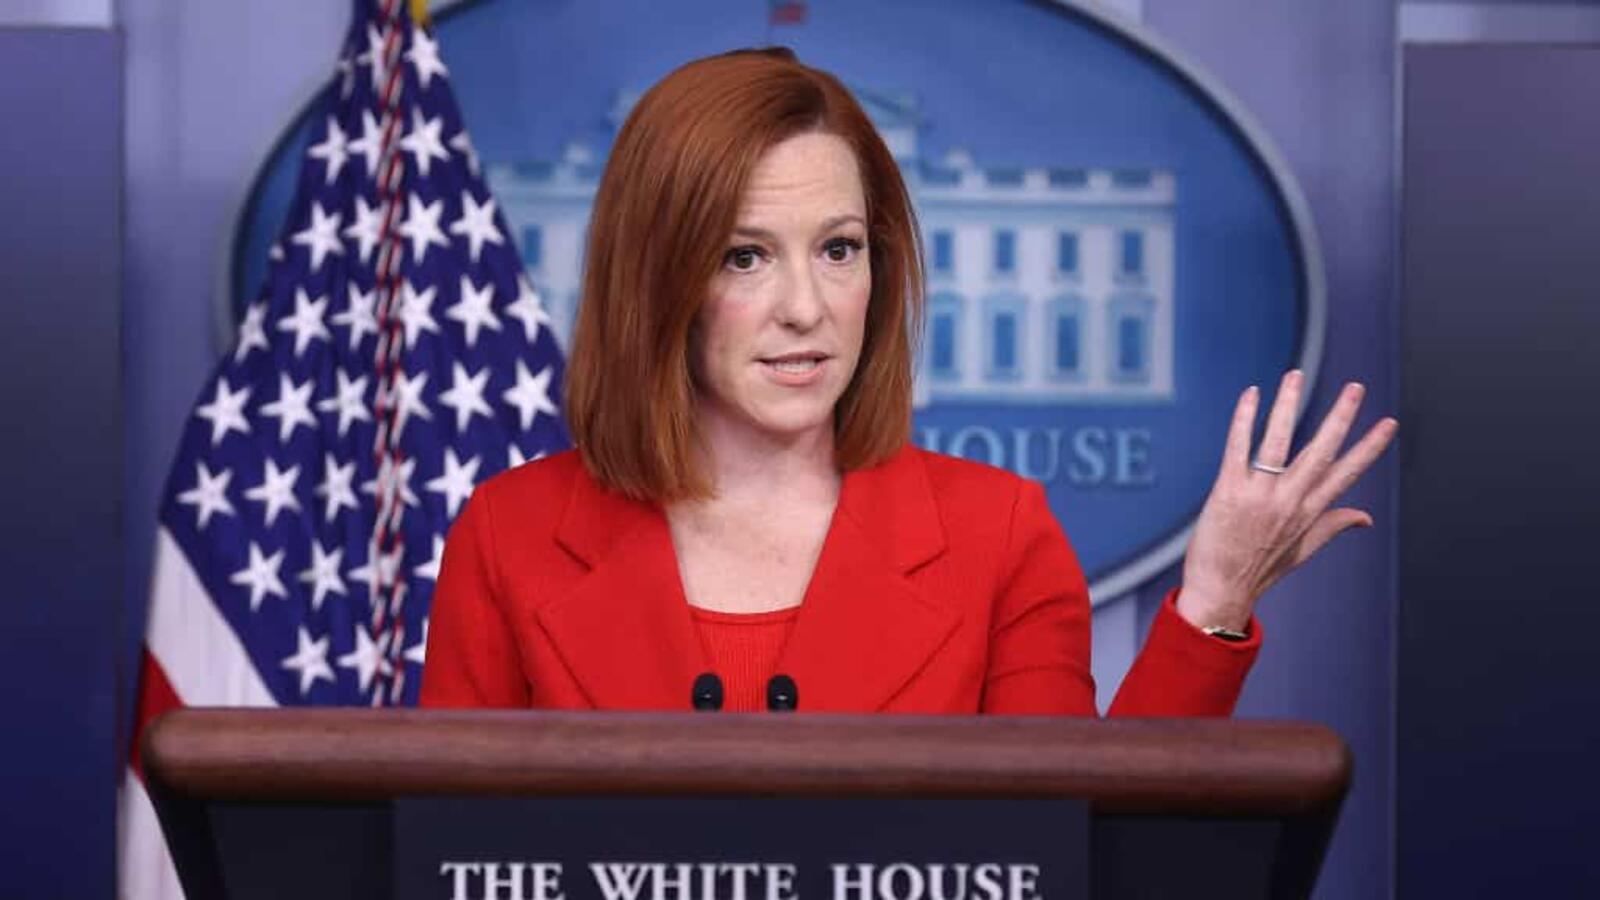 WAIT, WHAT? Psaki Suggests that Republicans -NOT DEMS- Want to 'Defund t...